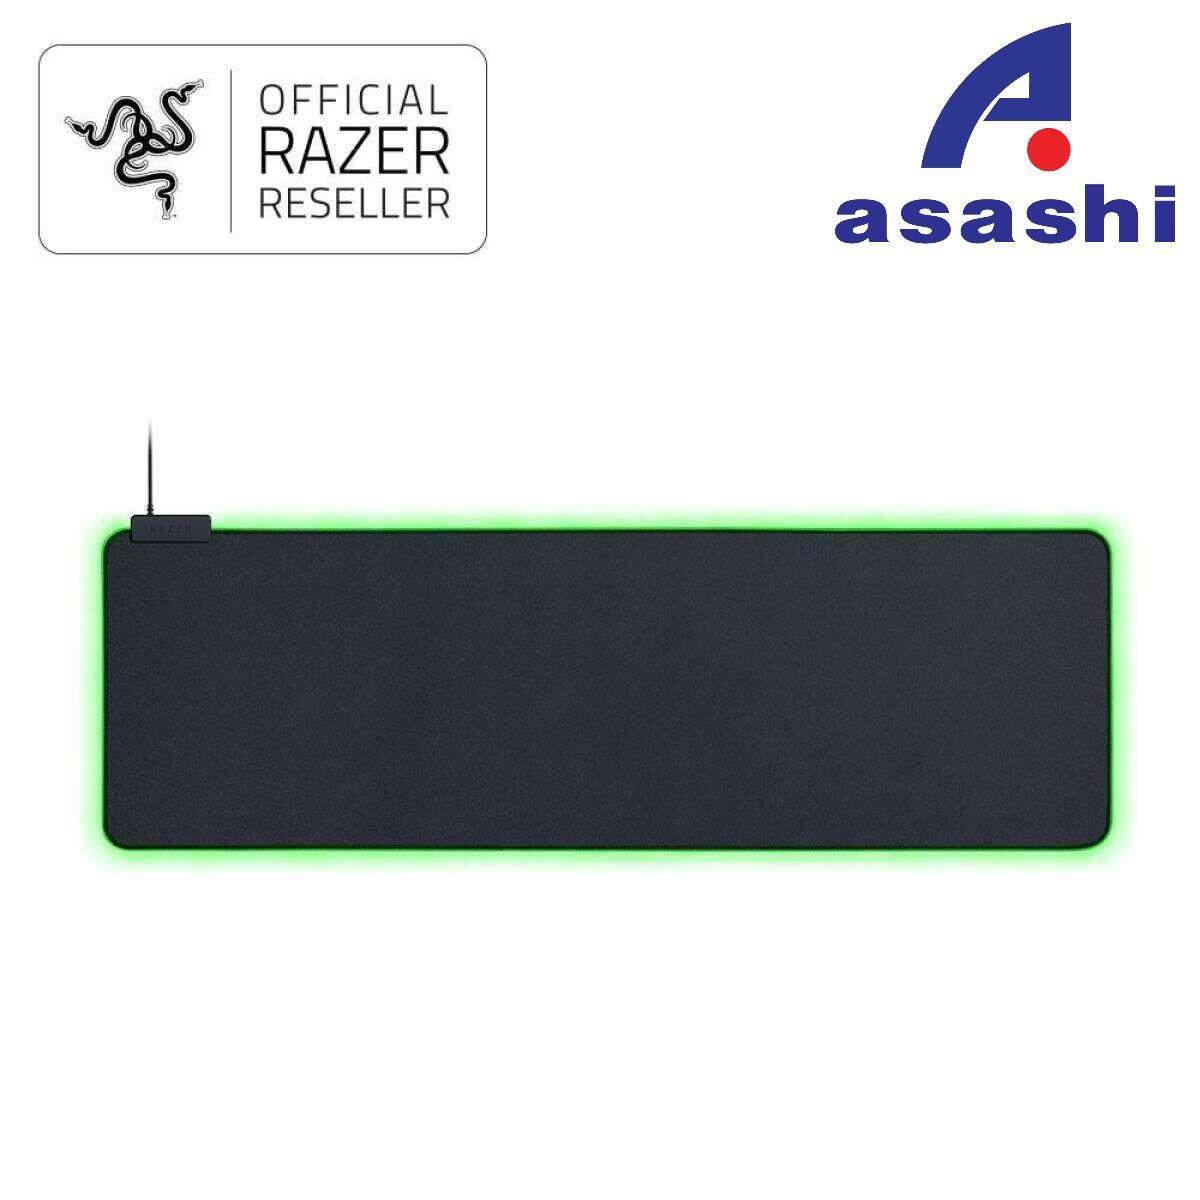 Razer Goliathus Extended Chroma (Oversized Soft Gaming Mouse Mat, 294 mm x 920mm) [RZ02-02500300-R3M1] Malaysia